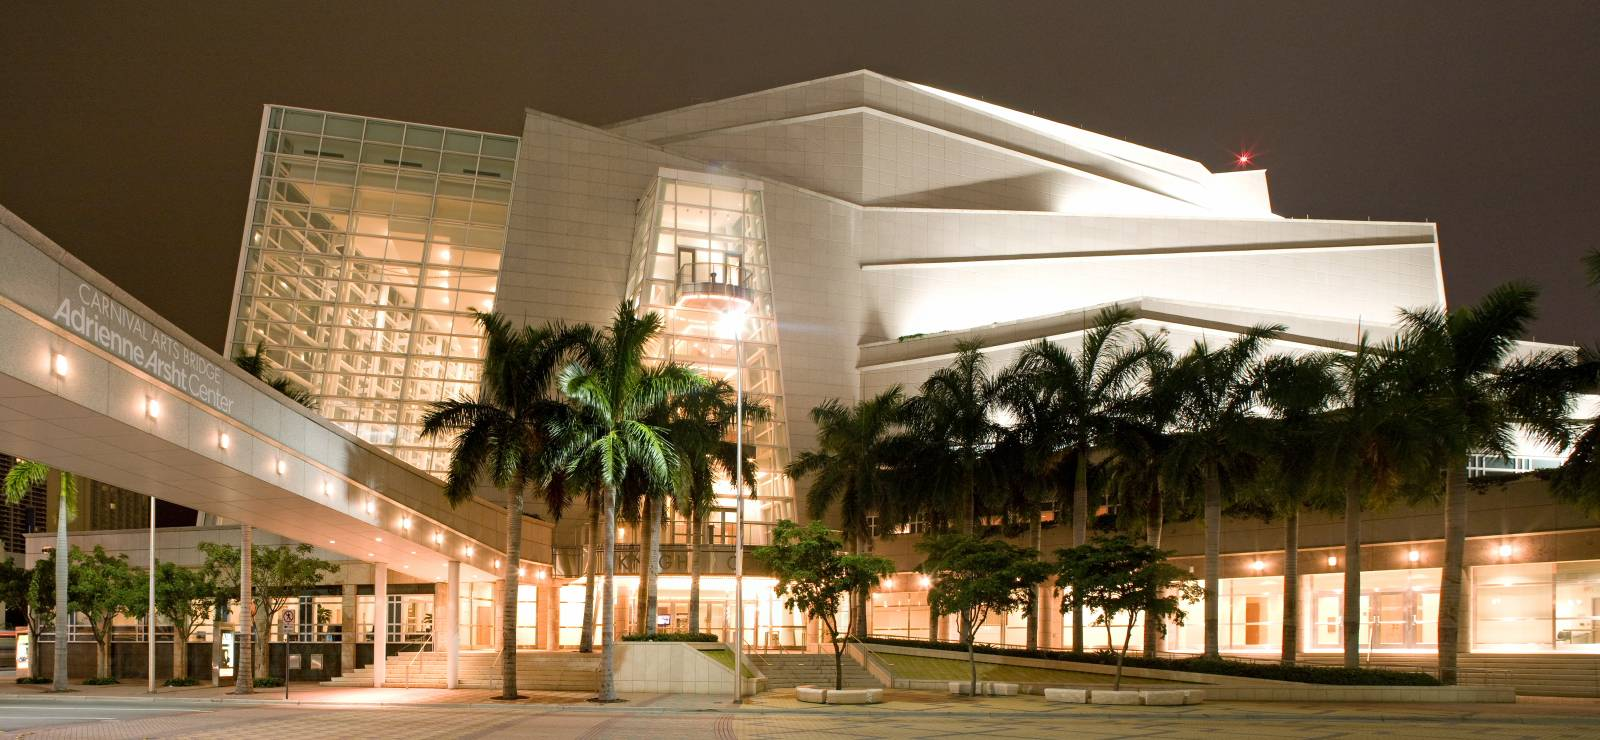 The Adrienne Arsht Center for the Performing Arts Snags 11 New ADDYs